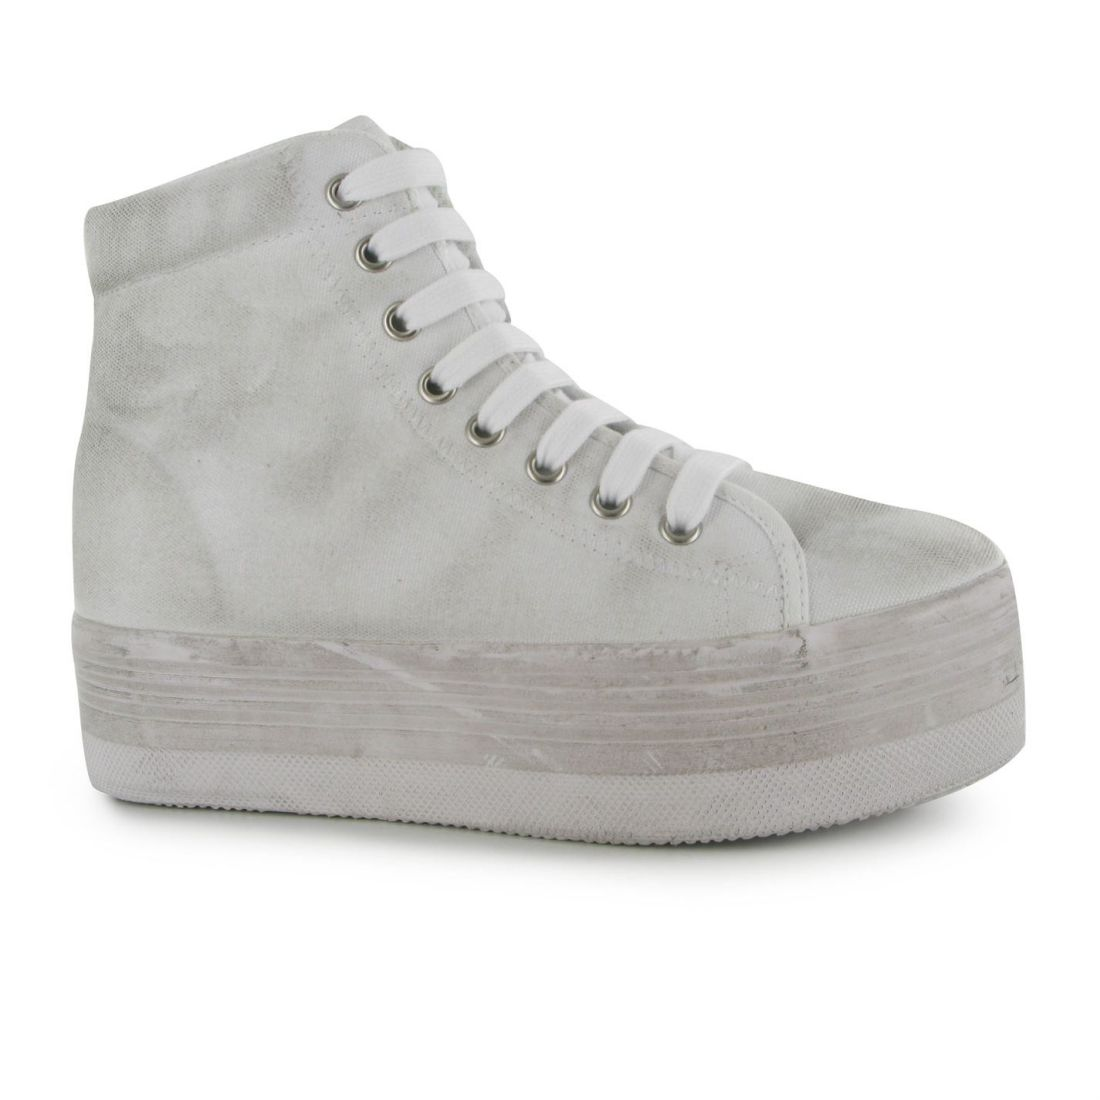 6e65eaac3a4c44 Image is loading Jeffrey-Campbell-Ladies-Womens-Shoes-Play-Canvas-Washed-